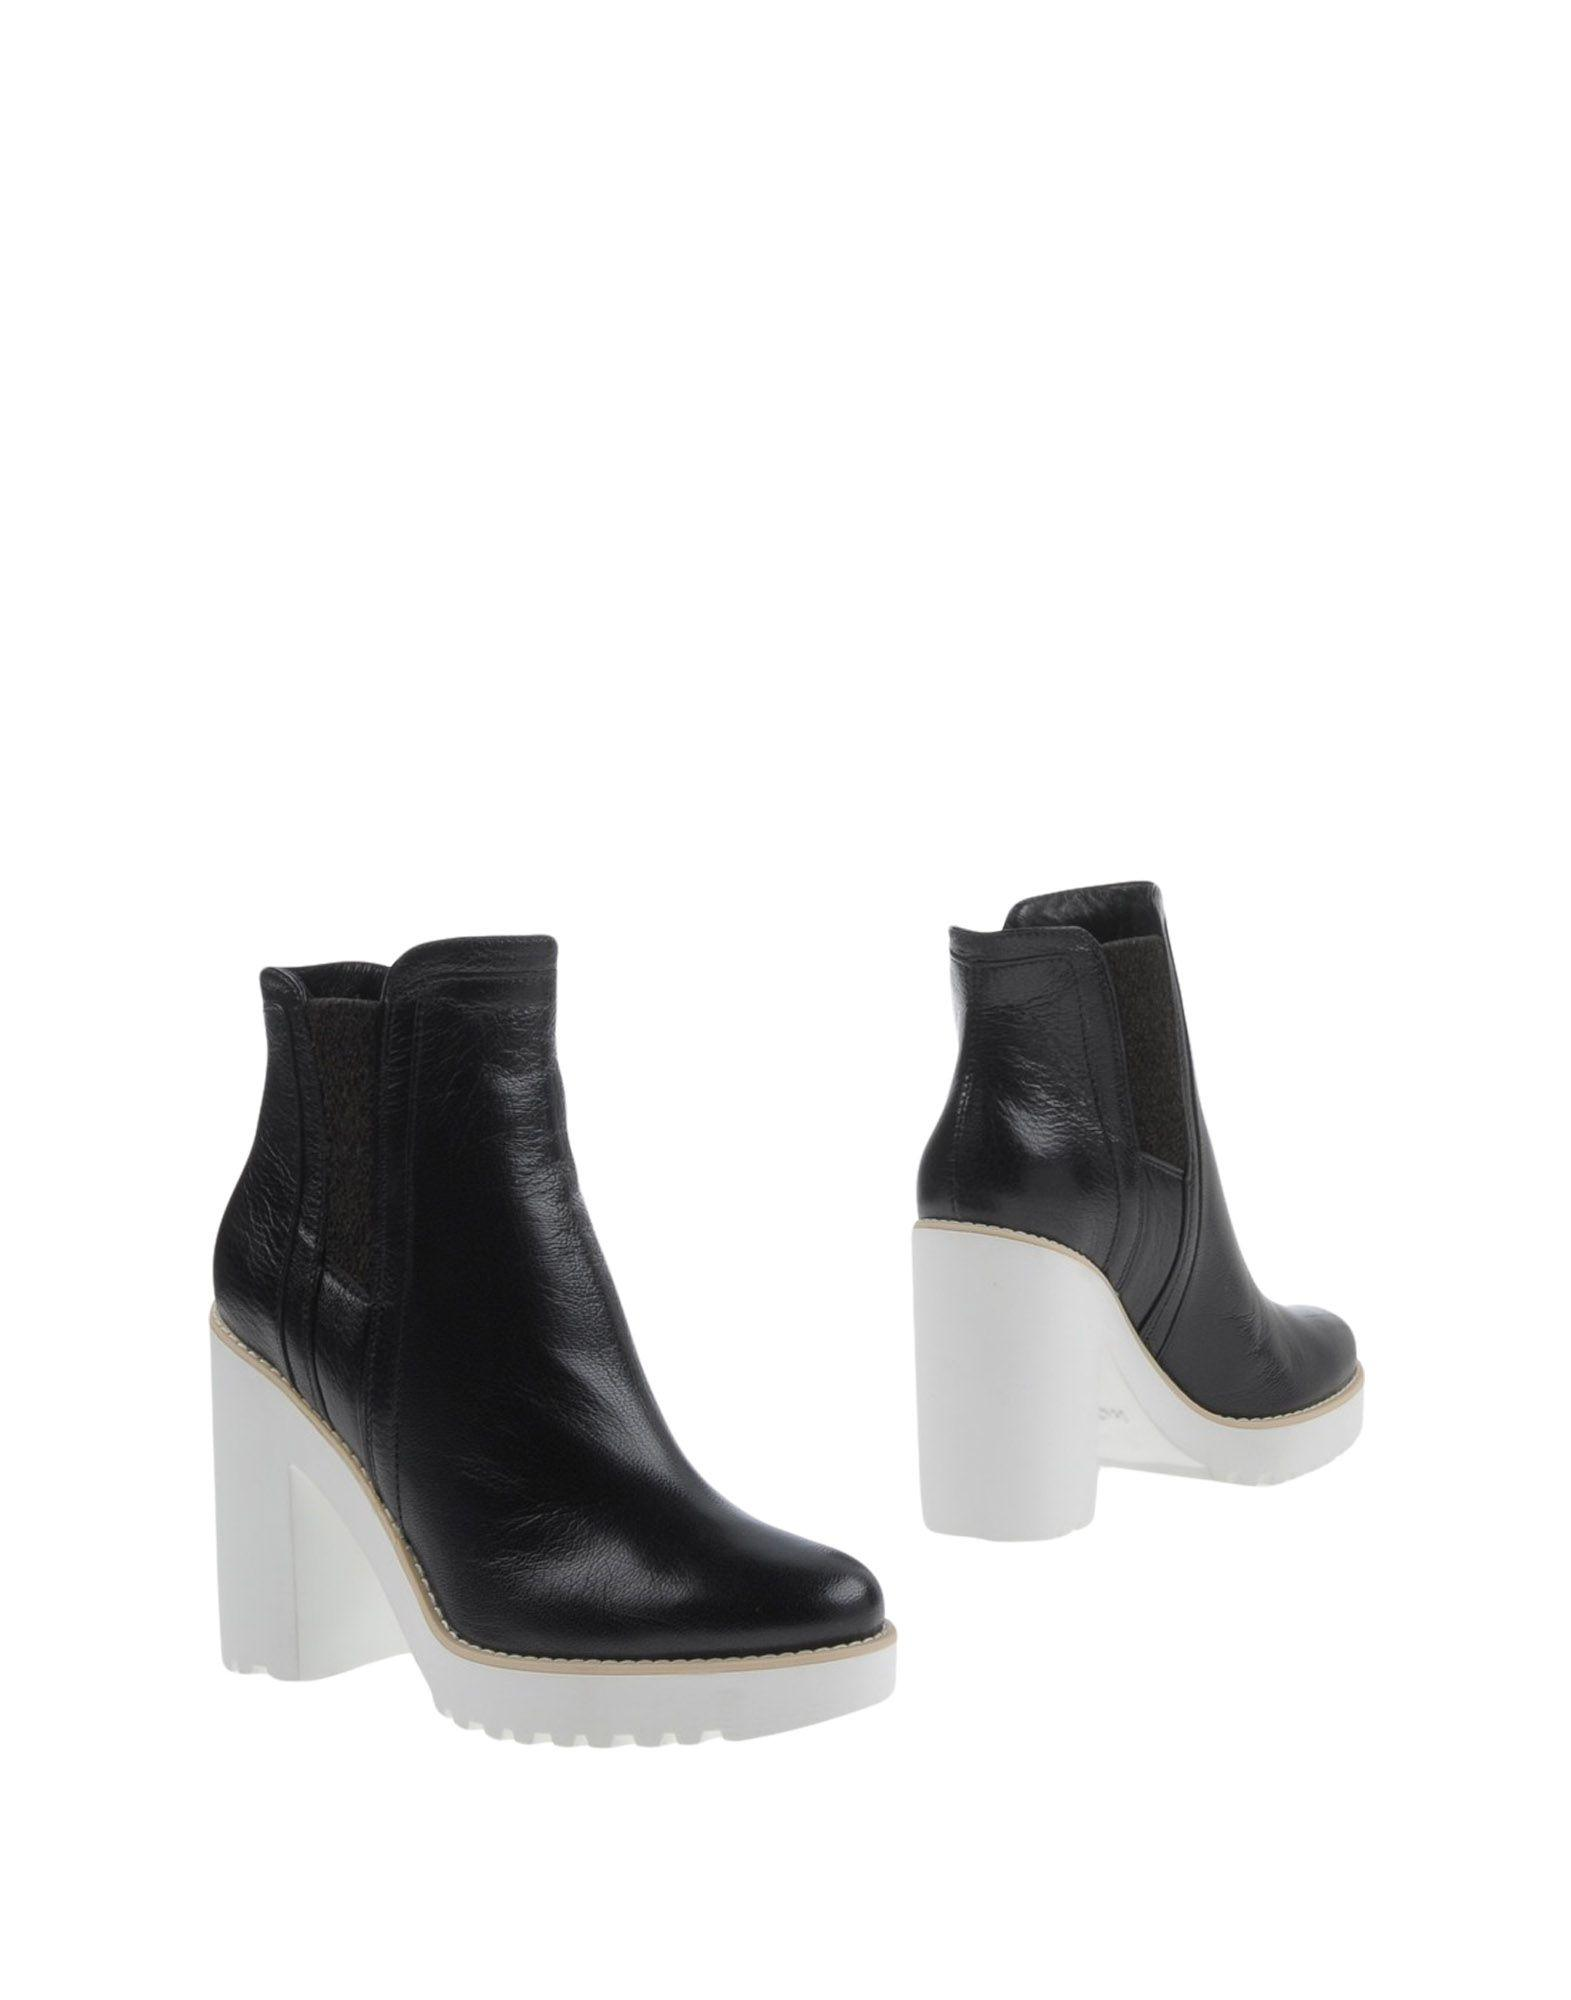 6162f294973 Lyst - Hogan Ankle Boots in Black